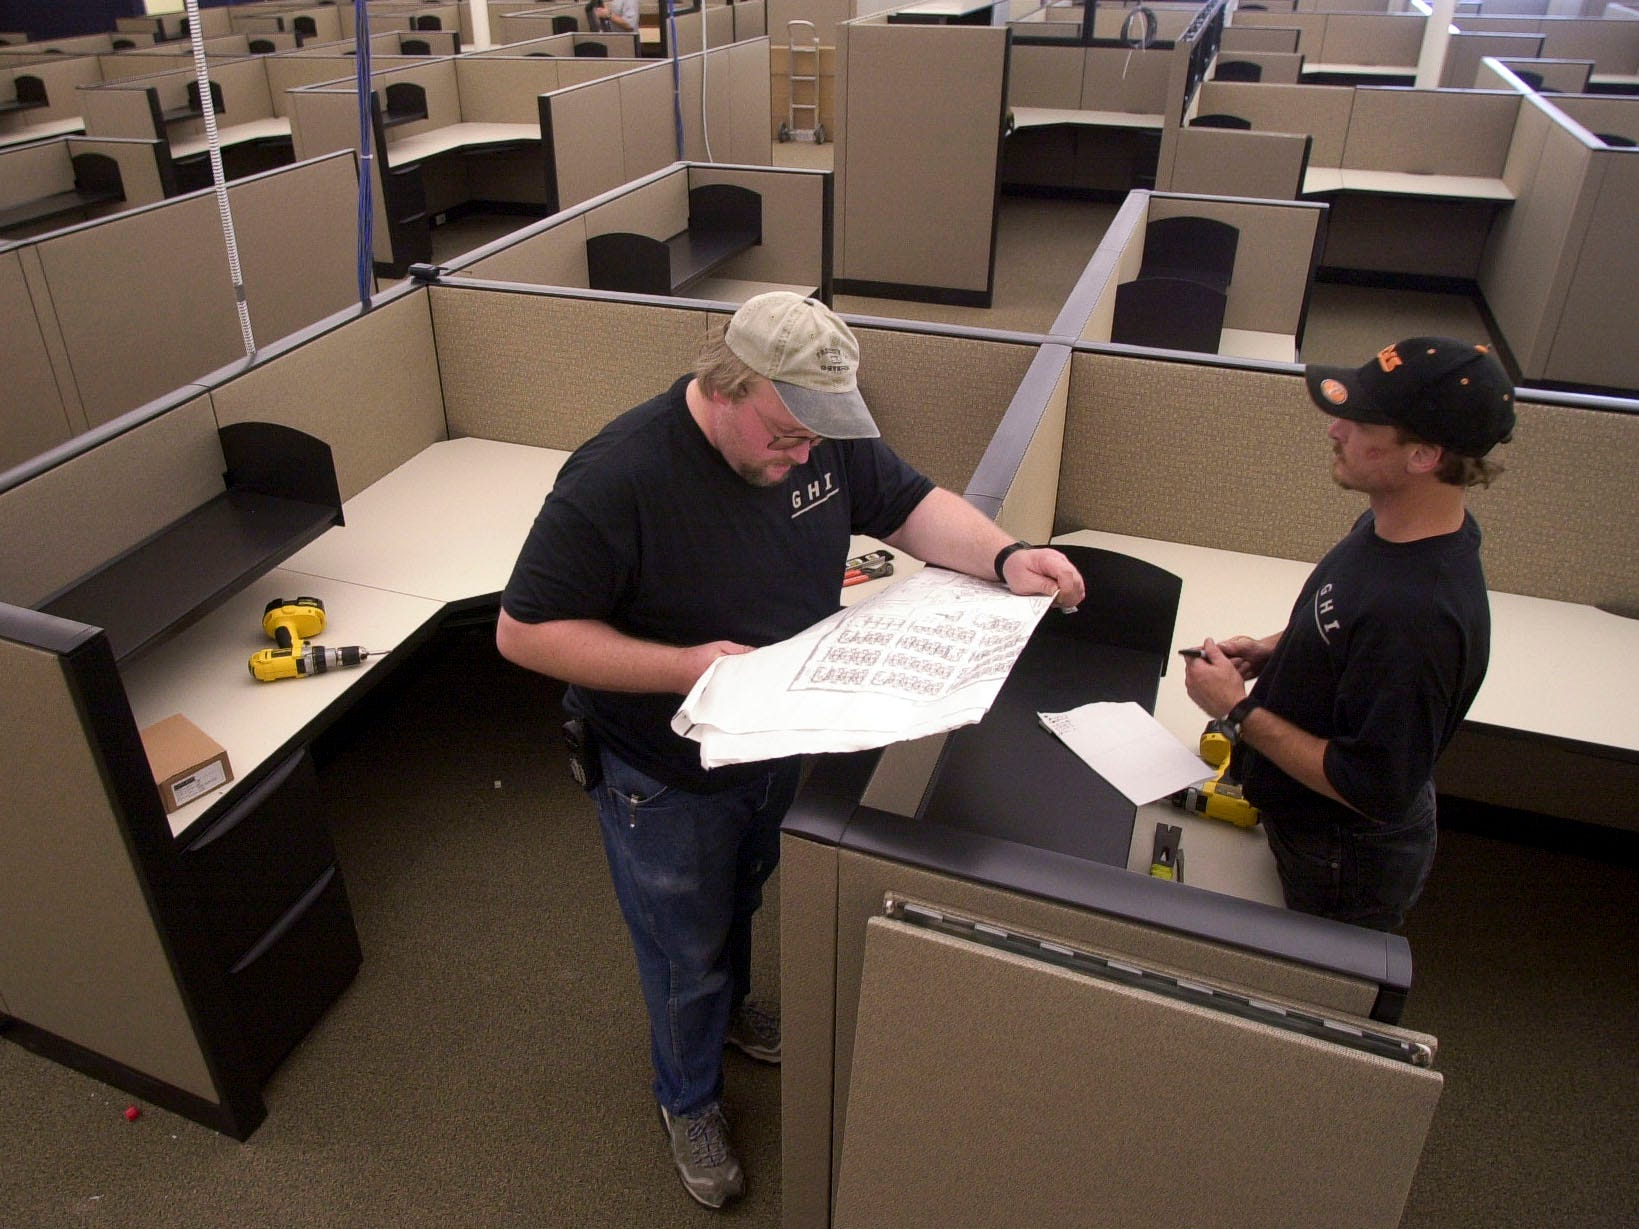 Rodger Ritter, left, and Jeff Bertram install cubicles at the Nova Information Systems expansion Friday in South Knoxville. Nova is expanding into a 60,000 sq. ft.  building on Chapman Highway that was the former Lowe's Home Improvement Warehouse. The new facility will house 400 new employees according to Executive VP David Strider. 2003.